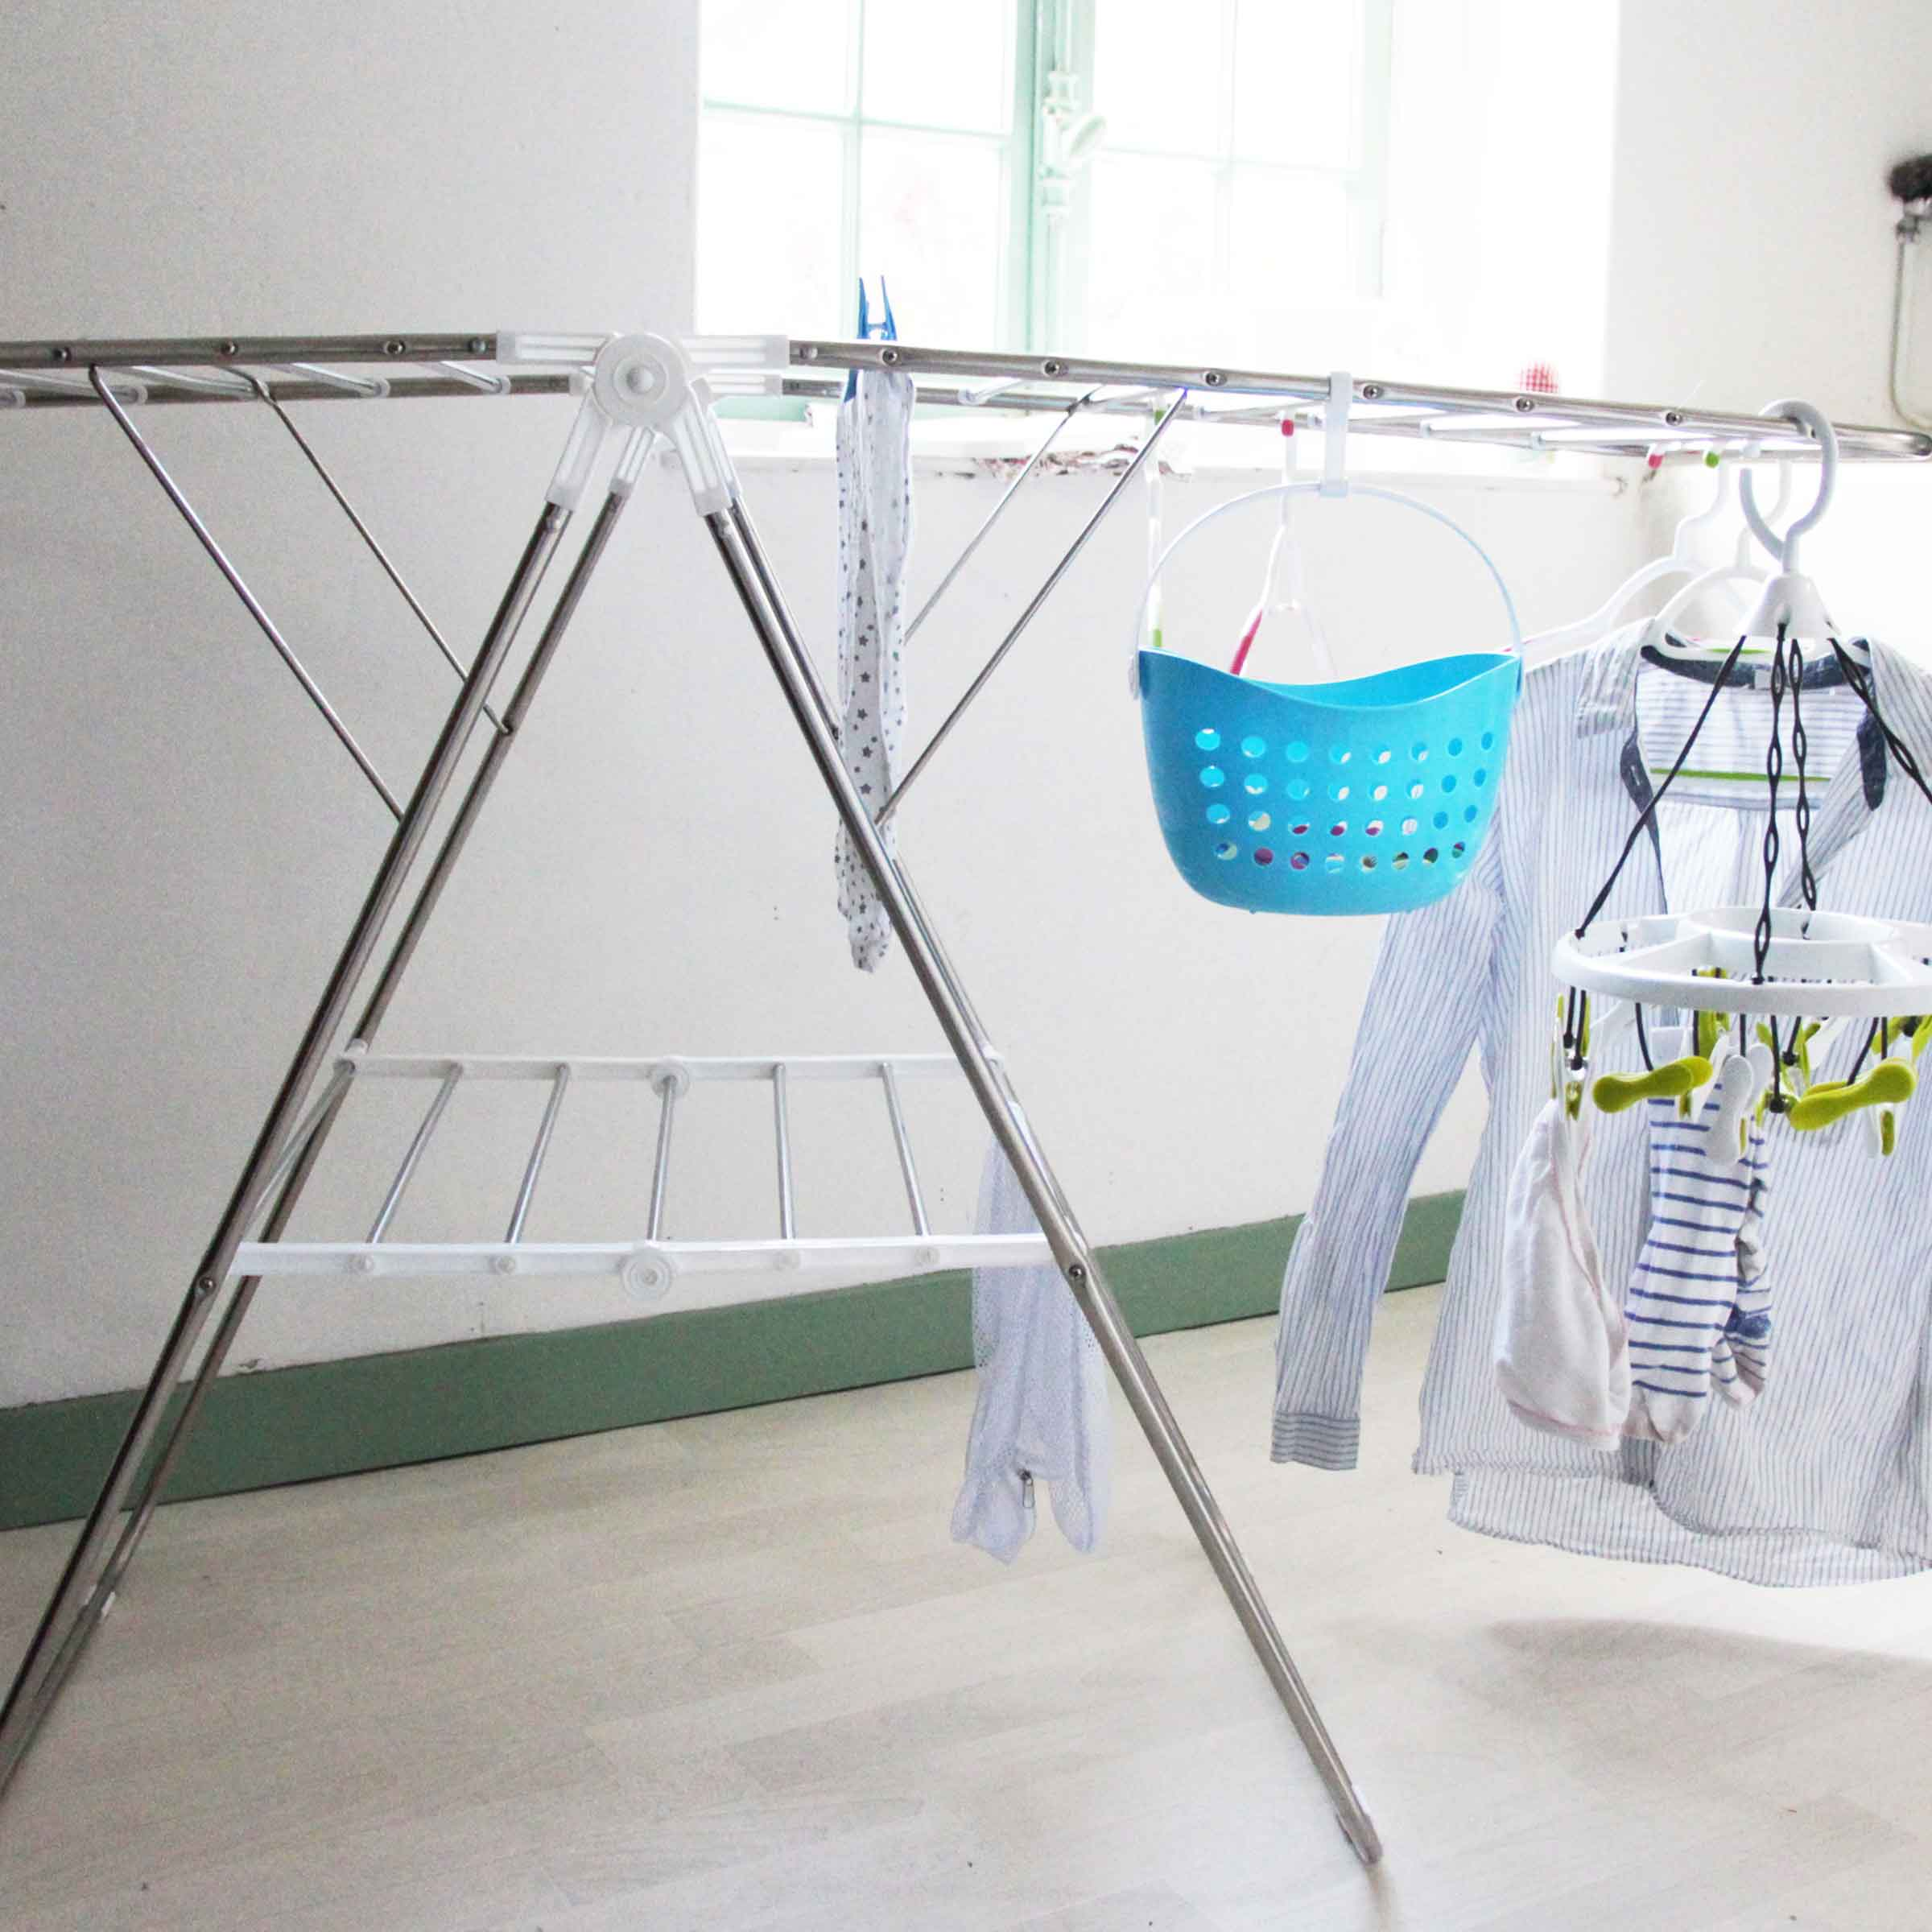 lot de pinces à linge extra fortes en plastique coloré